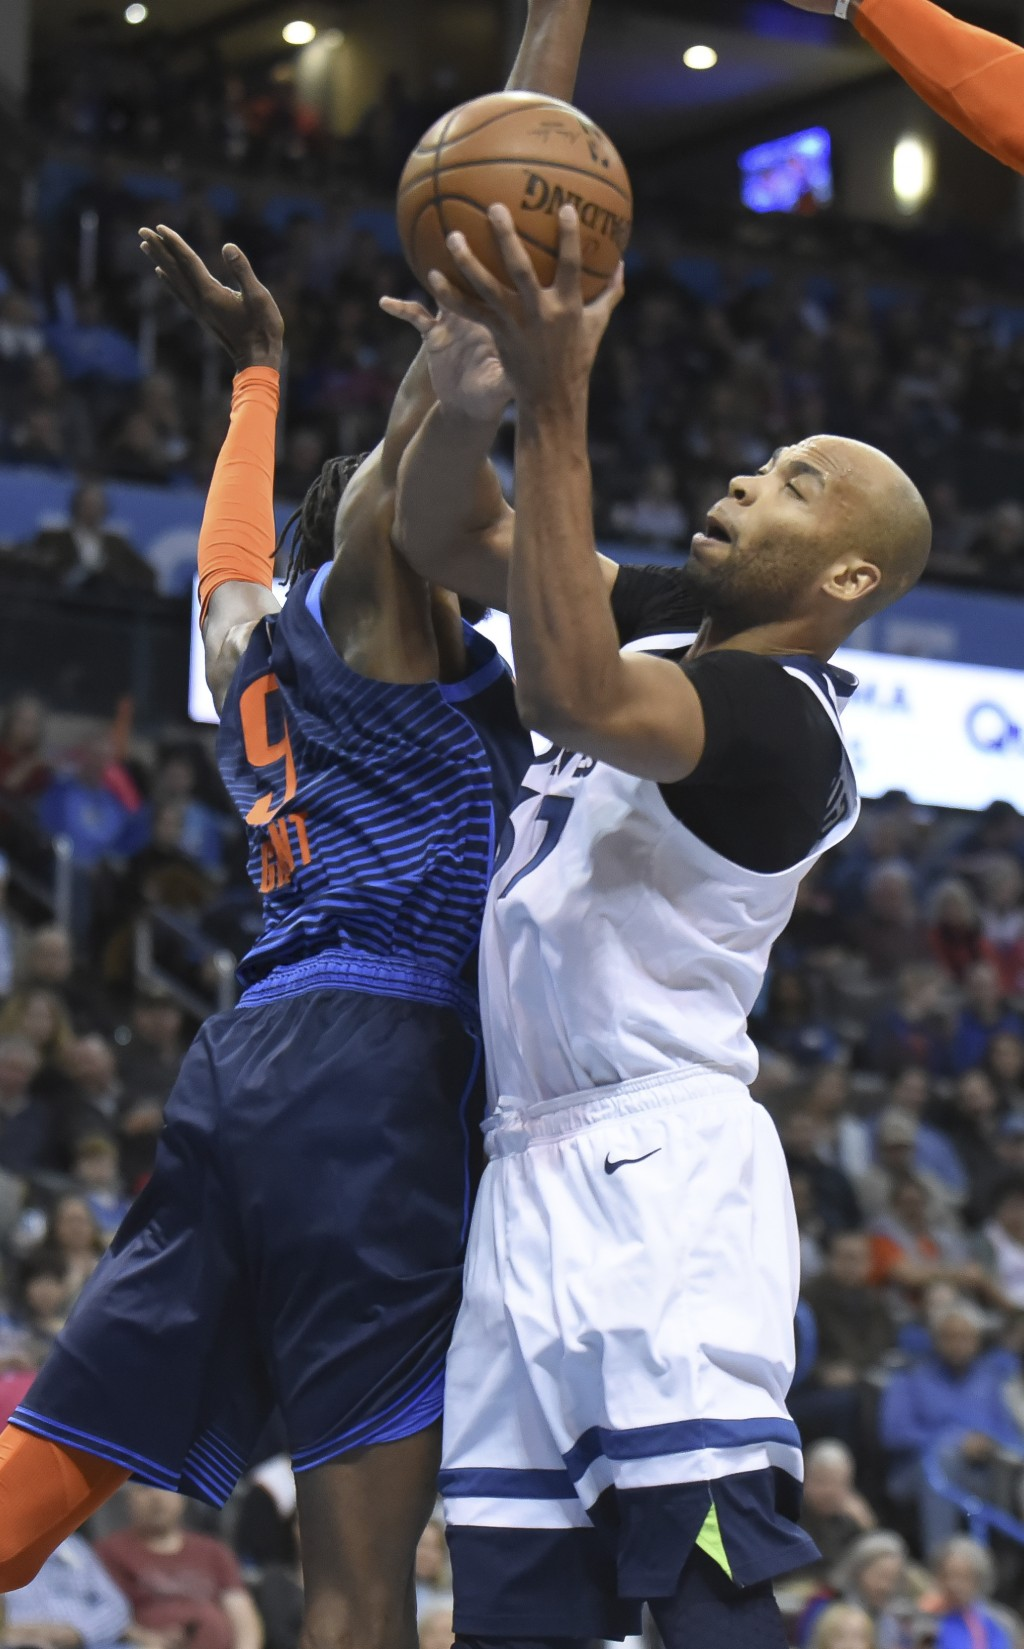 Minnesota Timberwolves forward Taj Gibson, right, goes up for a shot past Oklahoma City Thunder forward Jerami Grant, left, in the first half of an NB...